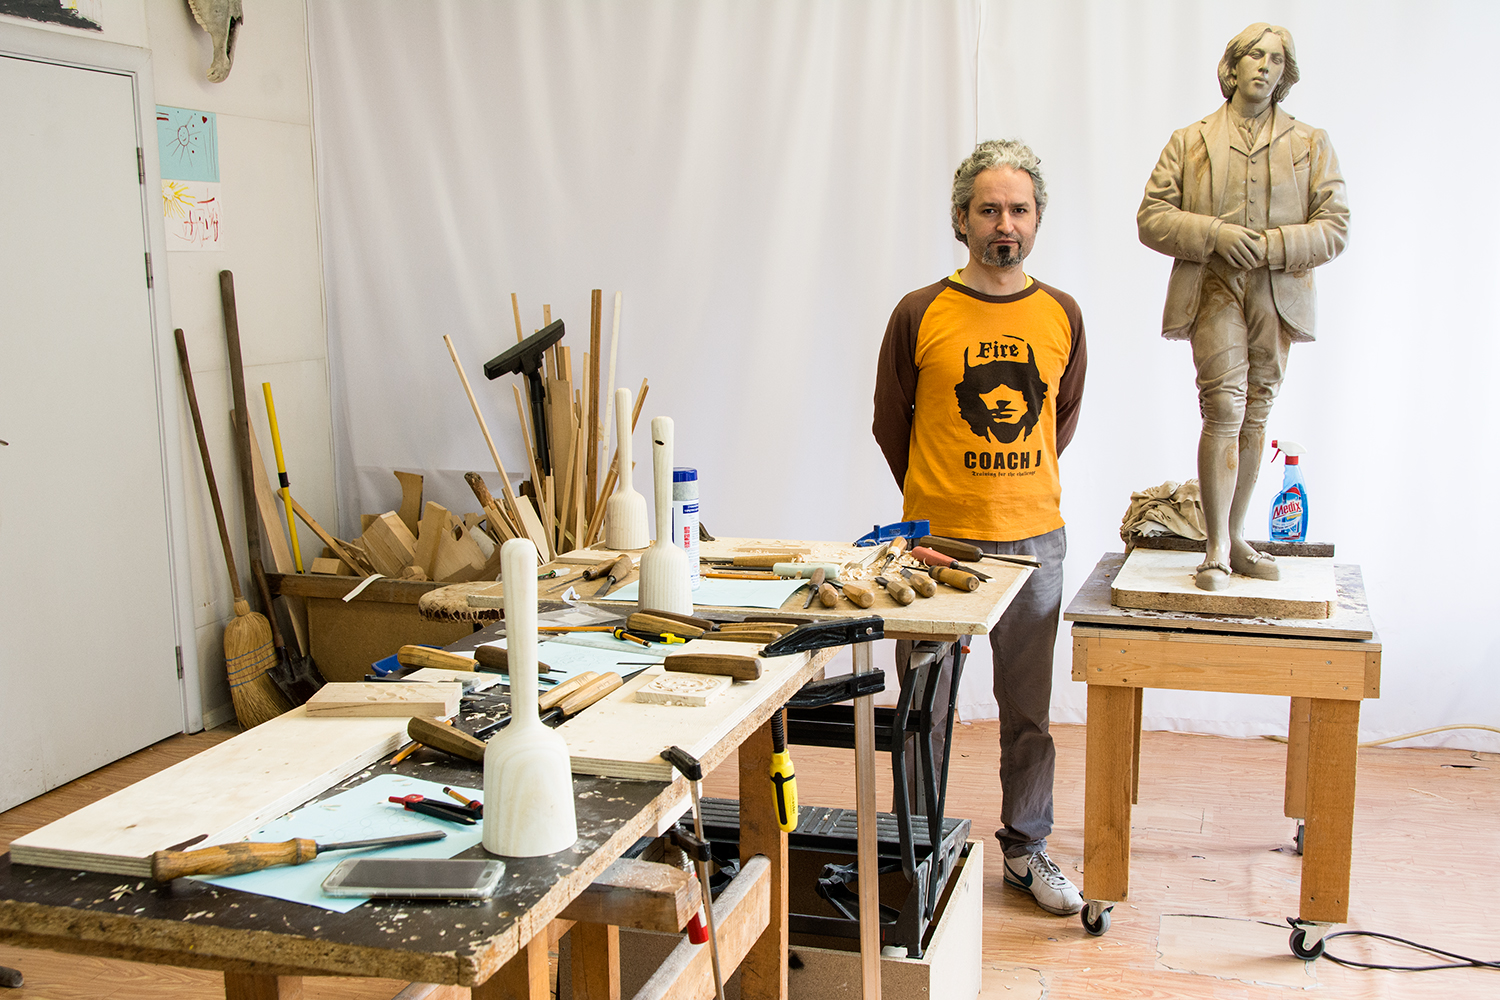 Sculptor and wood carver Steliyan Steliyanov, in his studio